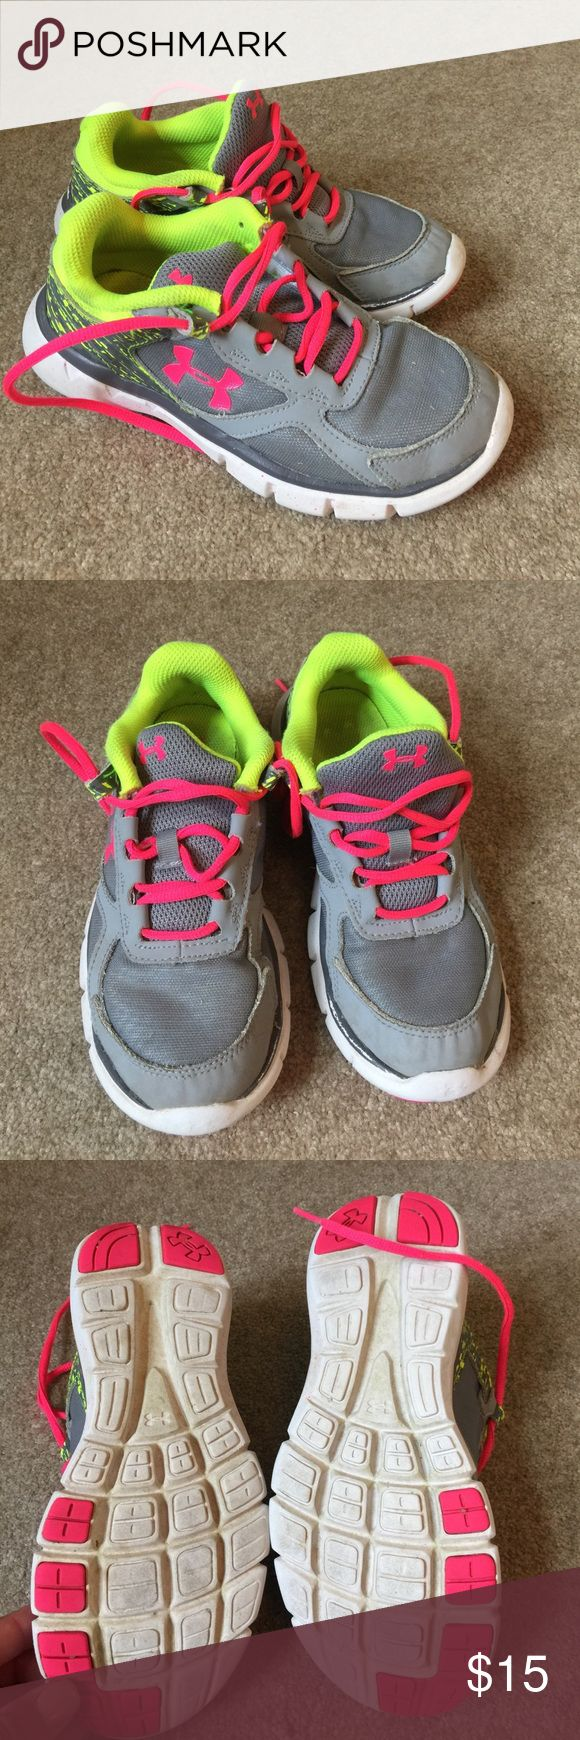 Grey & Neon Under Armour Tennis Shoes Lots of tread left on soles. NM Under Armour Shoes Sneakers